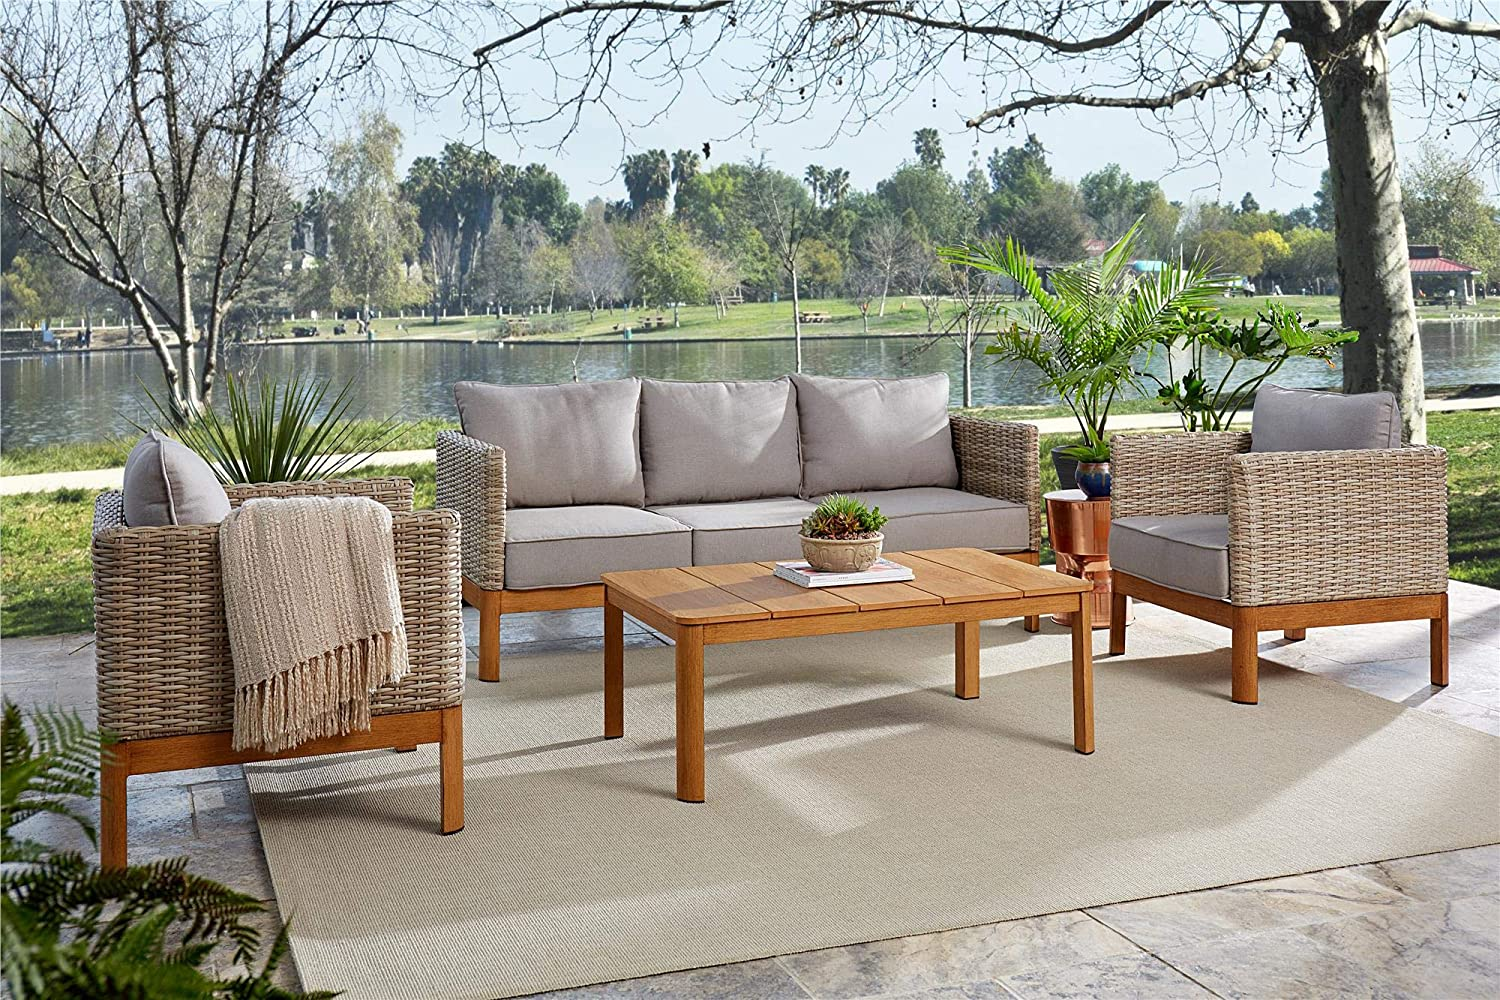 Cosco Outdoor Furniture Set Coffee Table Sofa Chair Set 4 Piece Tan Wicker Warm Gray Cushions